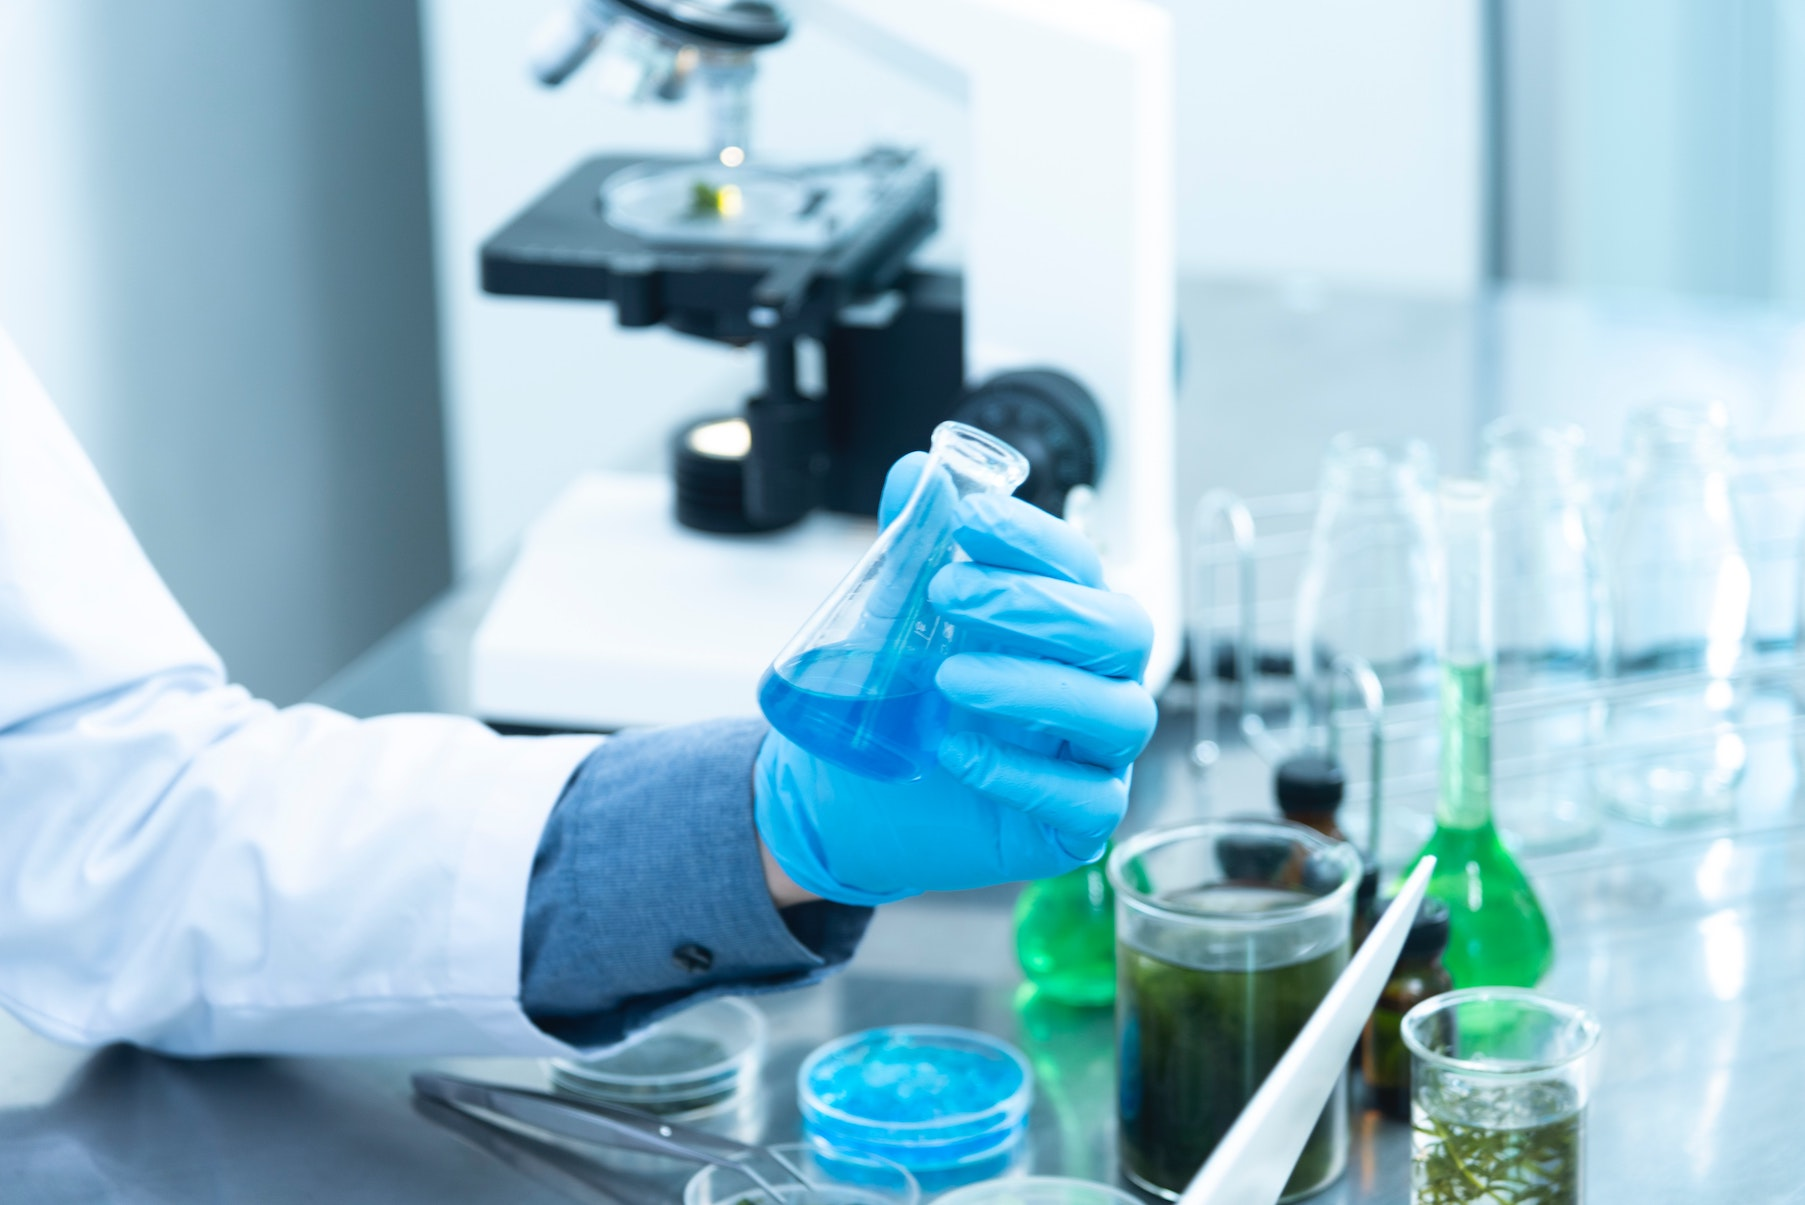 Potency Testing: In-House or External Lab?